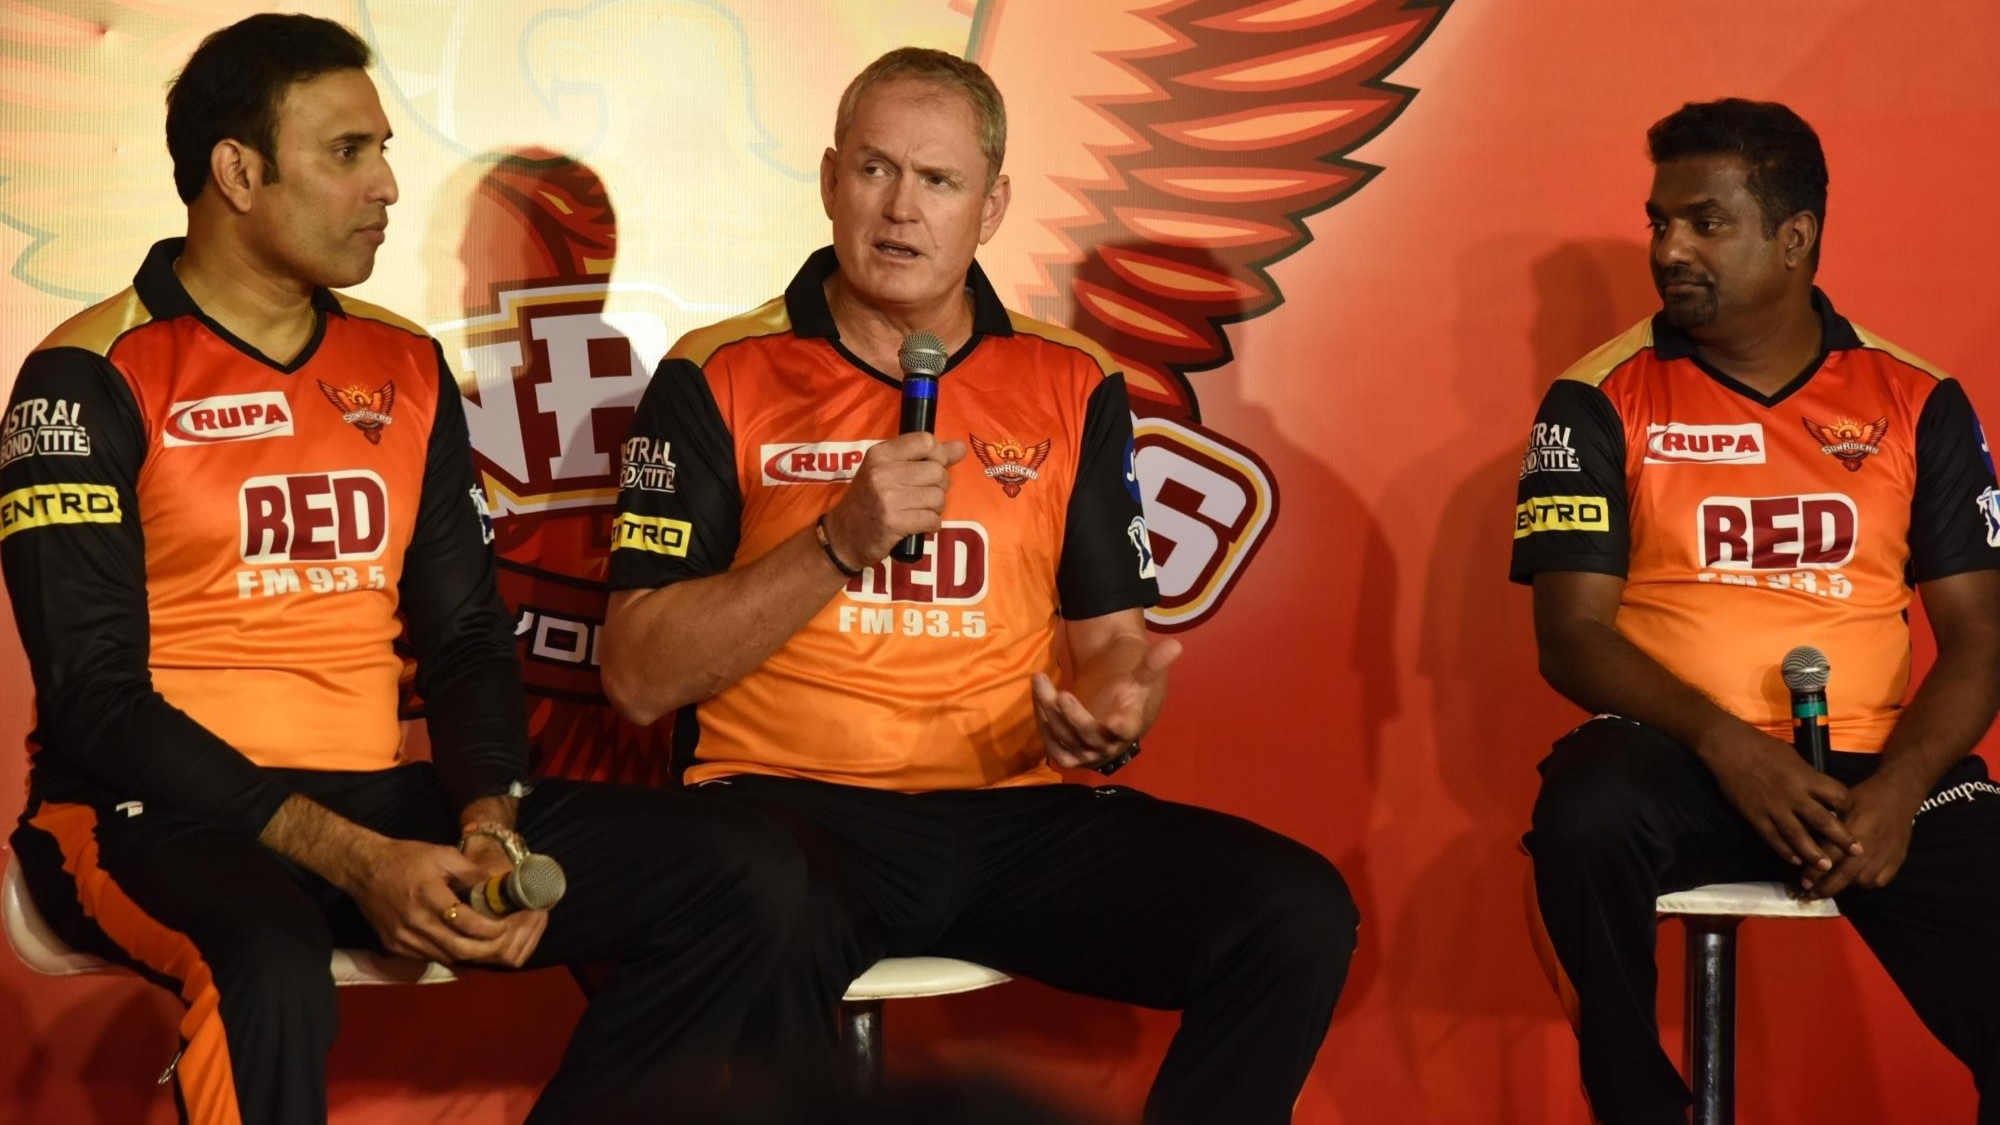 IPL 2018: Tom Moody's Sunrisers Hyderabad ready to counter Chris Gayle, KL Rahul